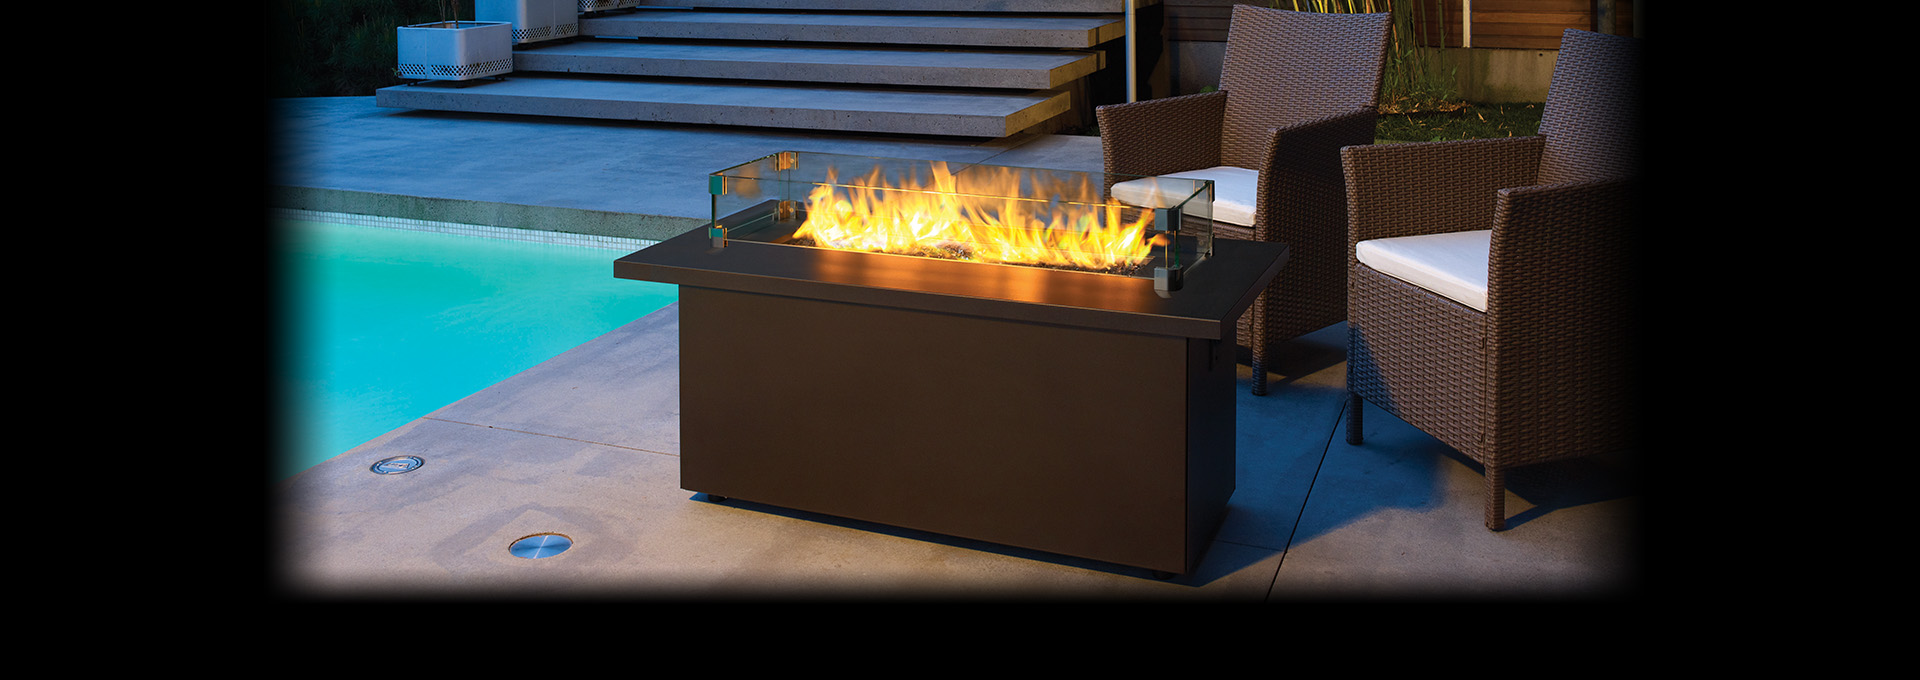 outdoor gas firetable plateau pto30 coffee regency fireplace